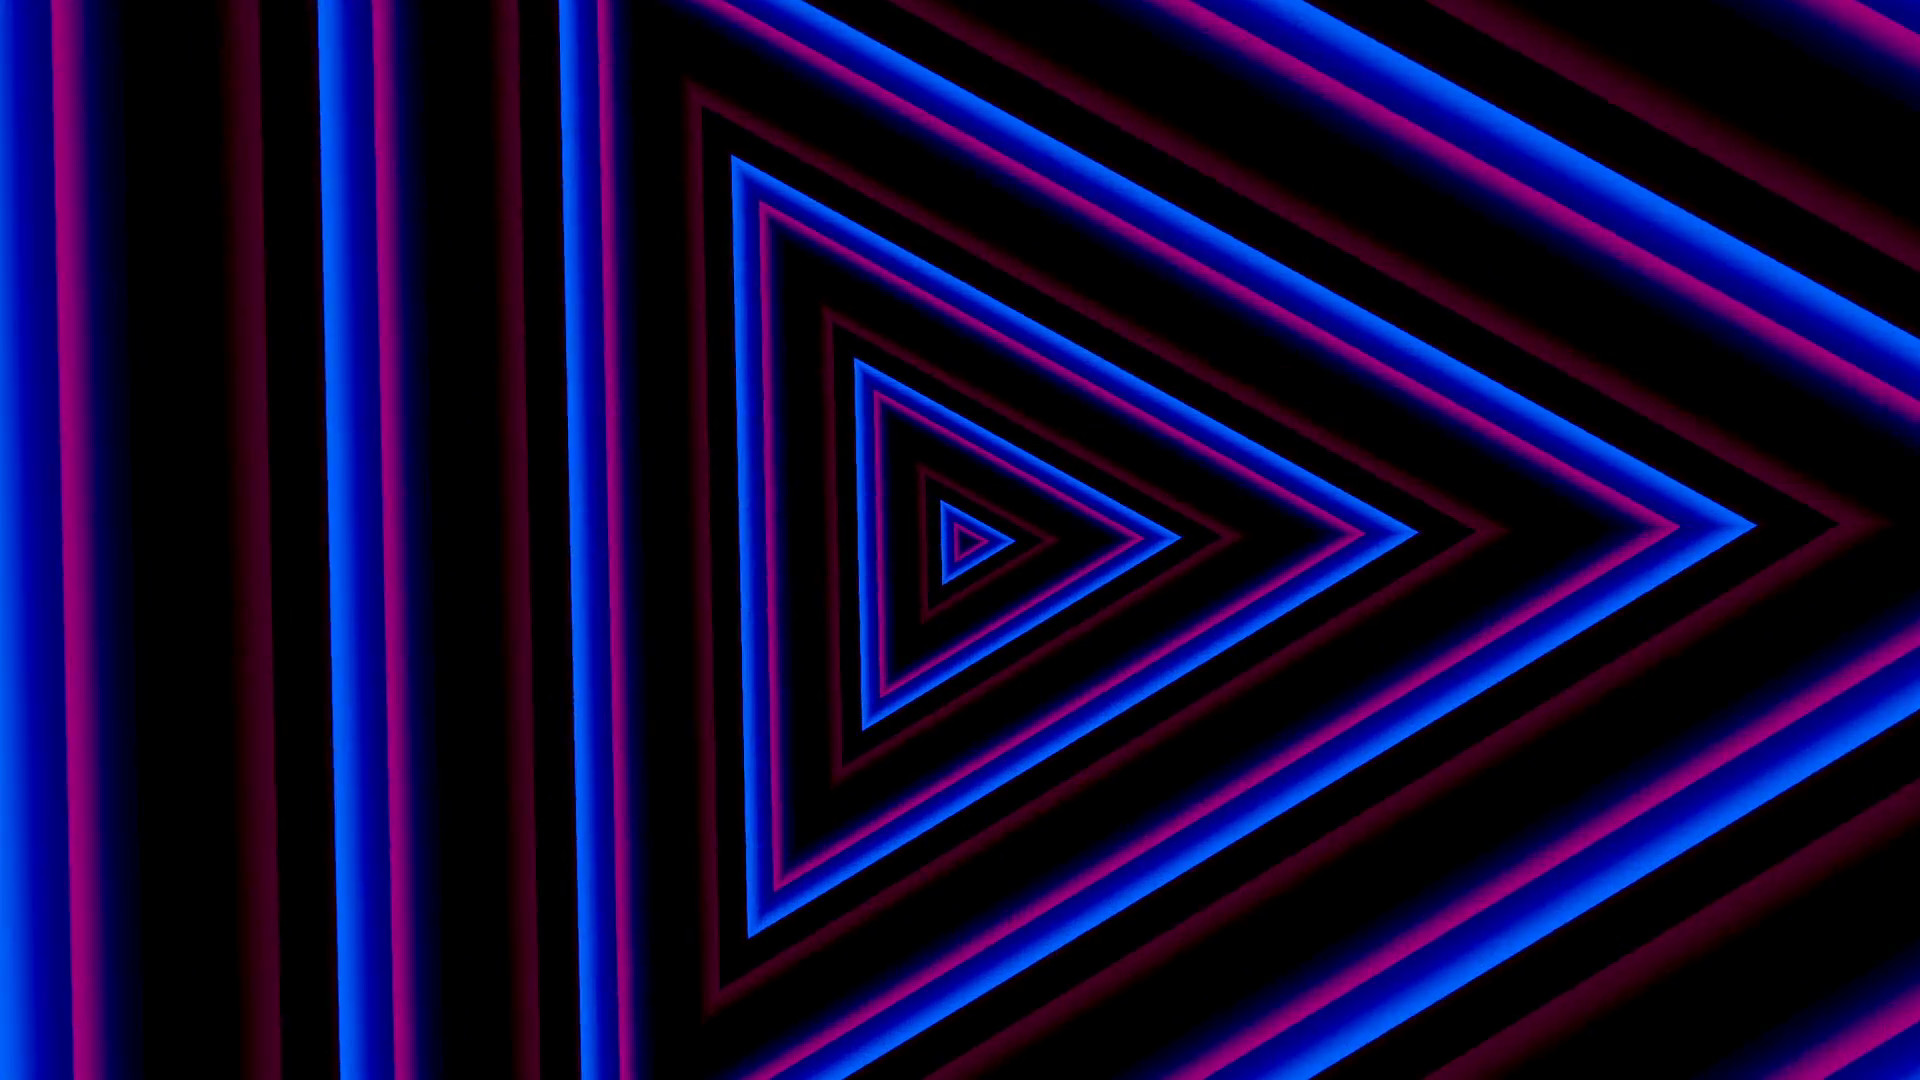 neon background images 183��